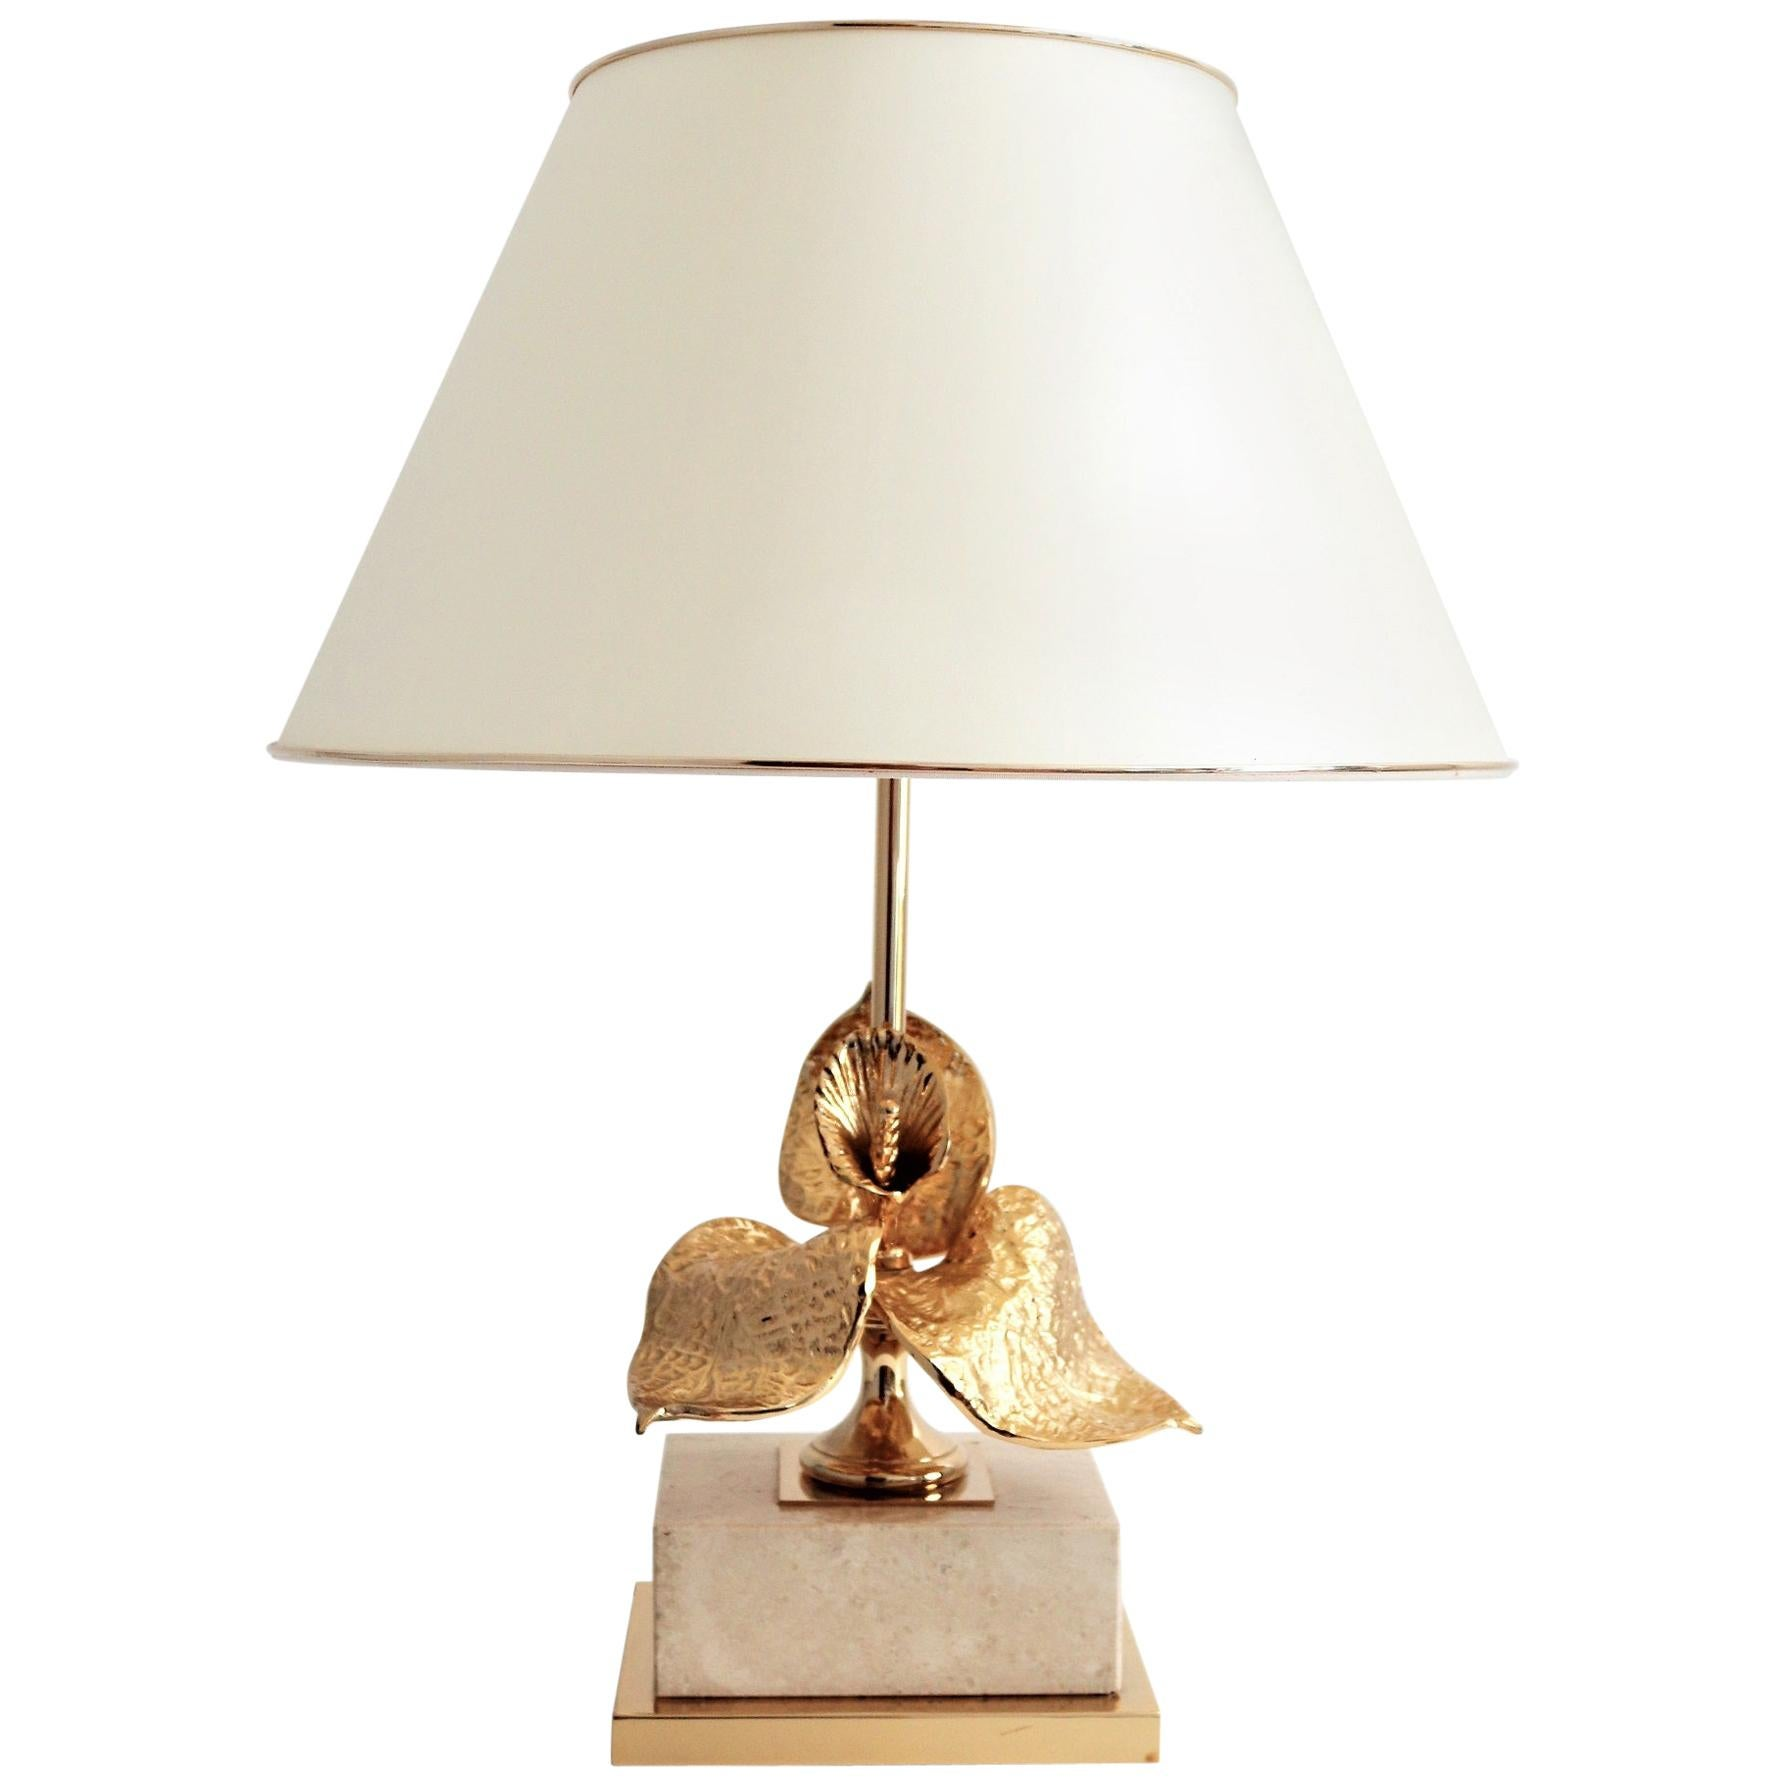 French Travertine and Gold-Plated Table Lamp, 1970s